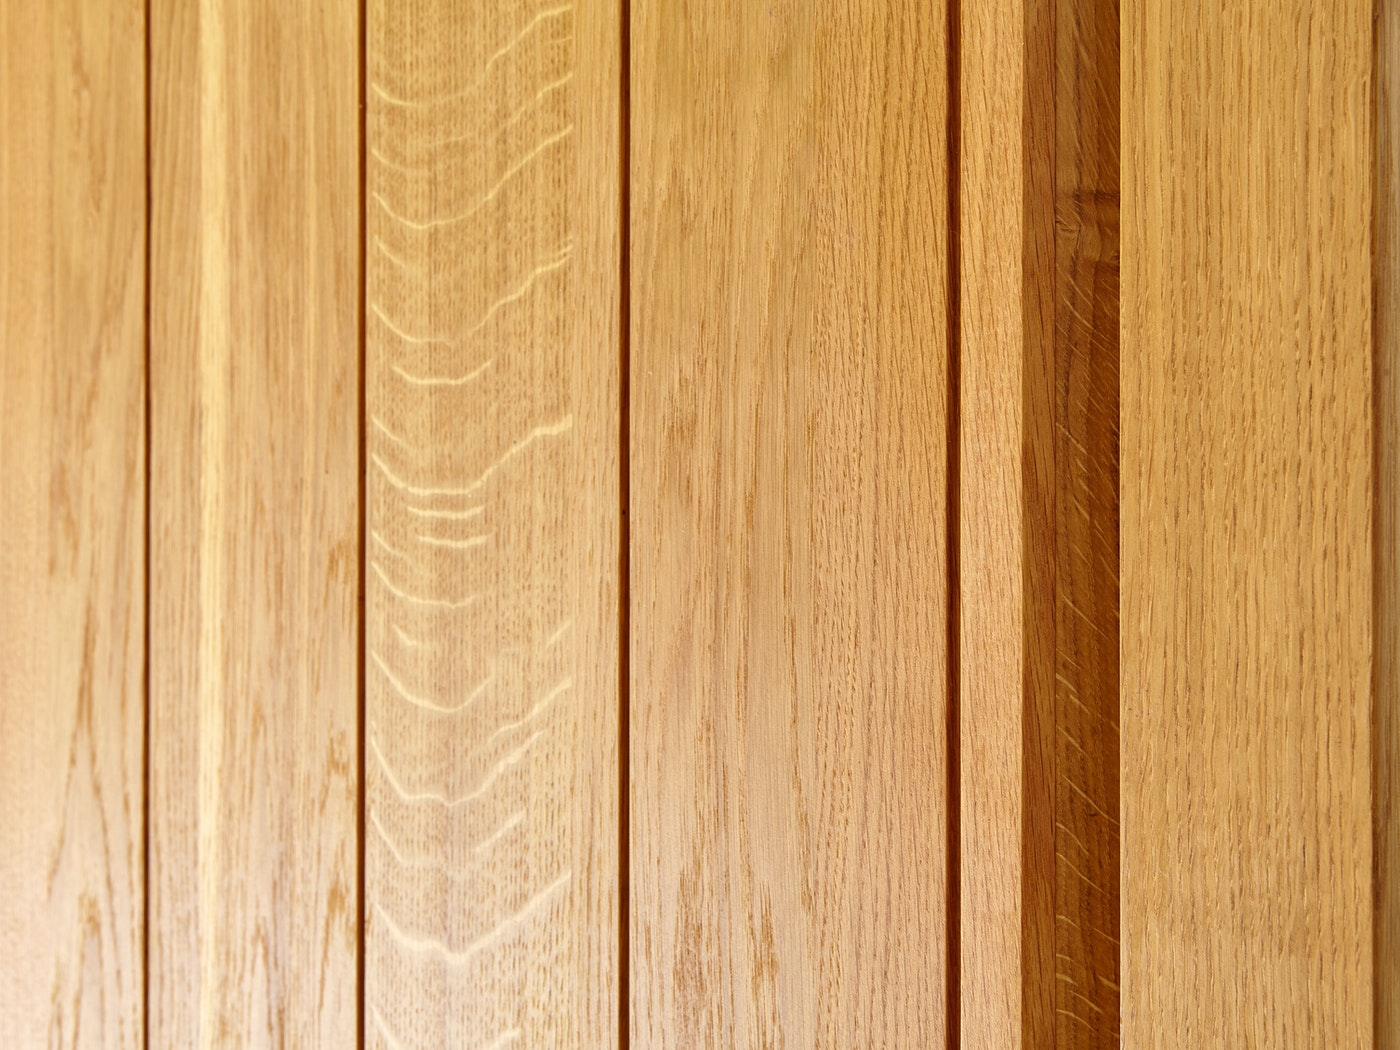 The Porto front door is made from beautiful european oak